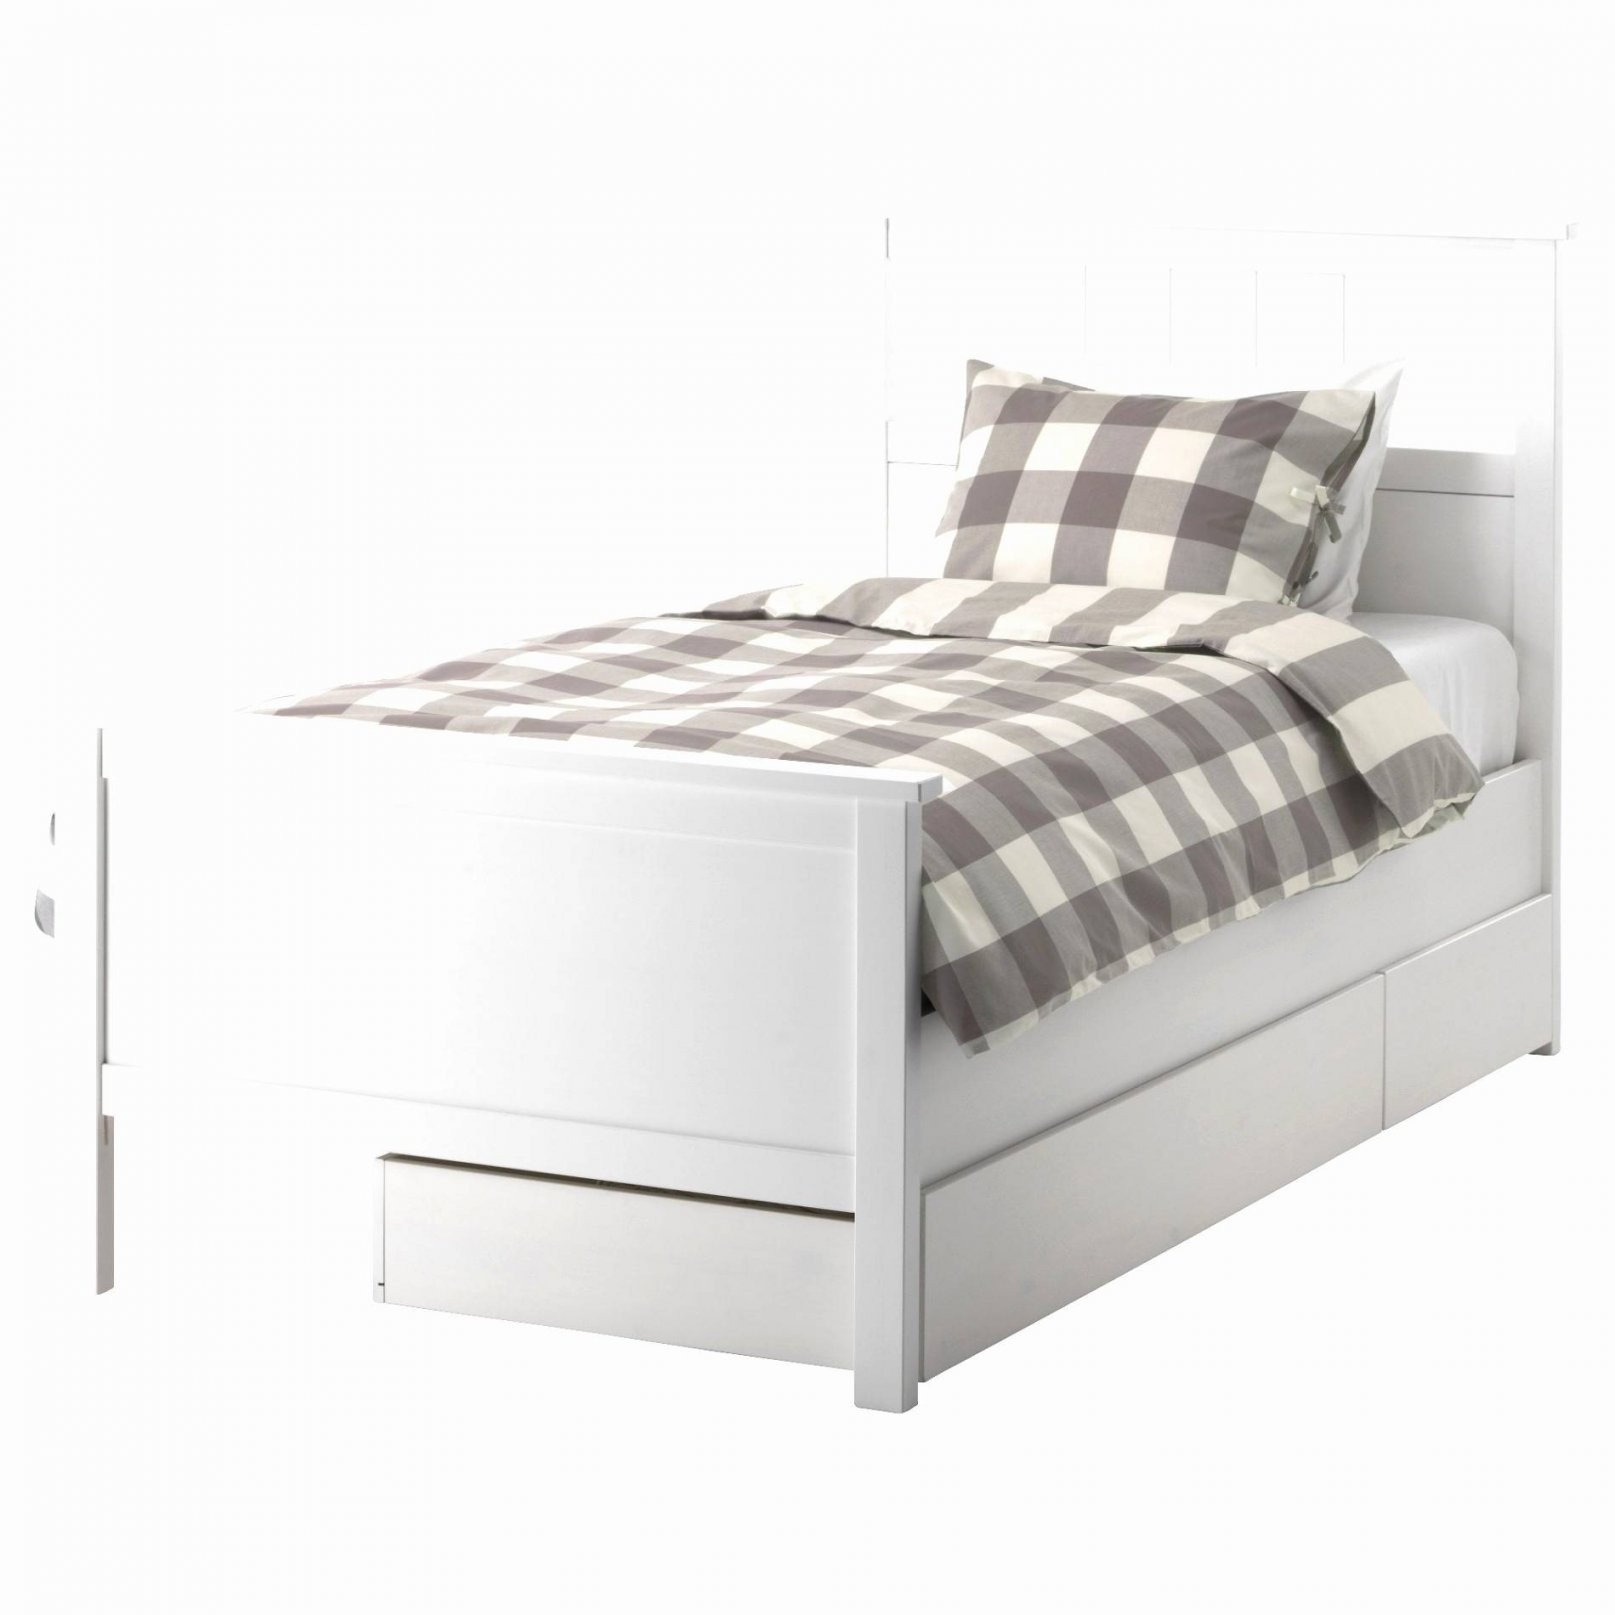 Bed 210 Lang Ikea Best Bett Ikea 200×200 Neu Bettgestell 200—200 von Bett Ikea 200X200 Photo